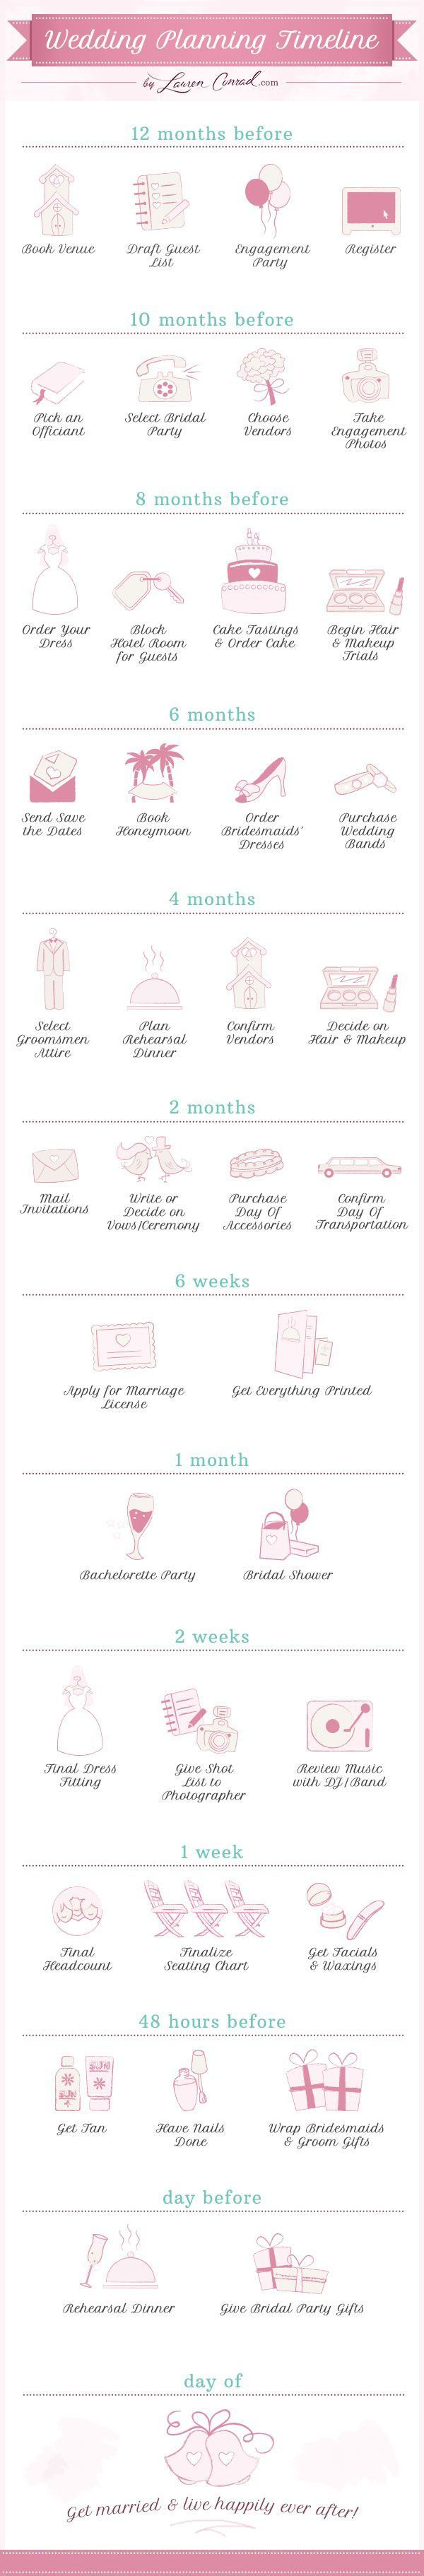 Wedding Bells: The Wedding Planning Timeline